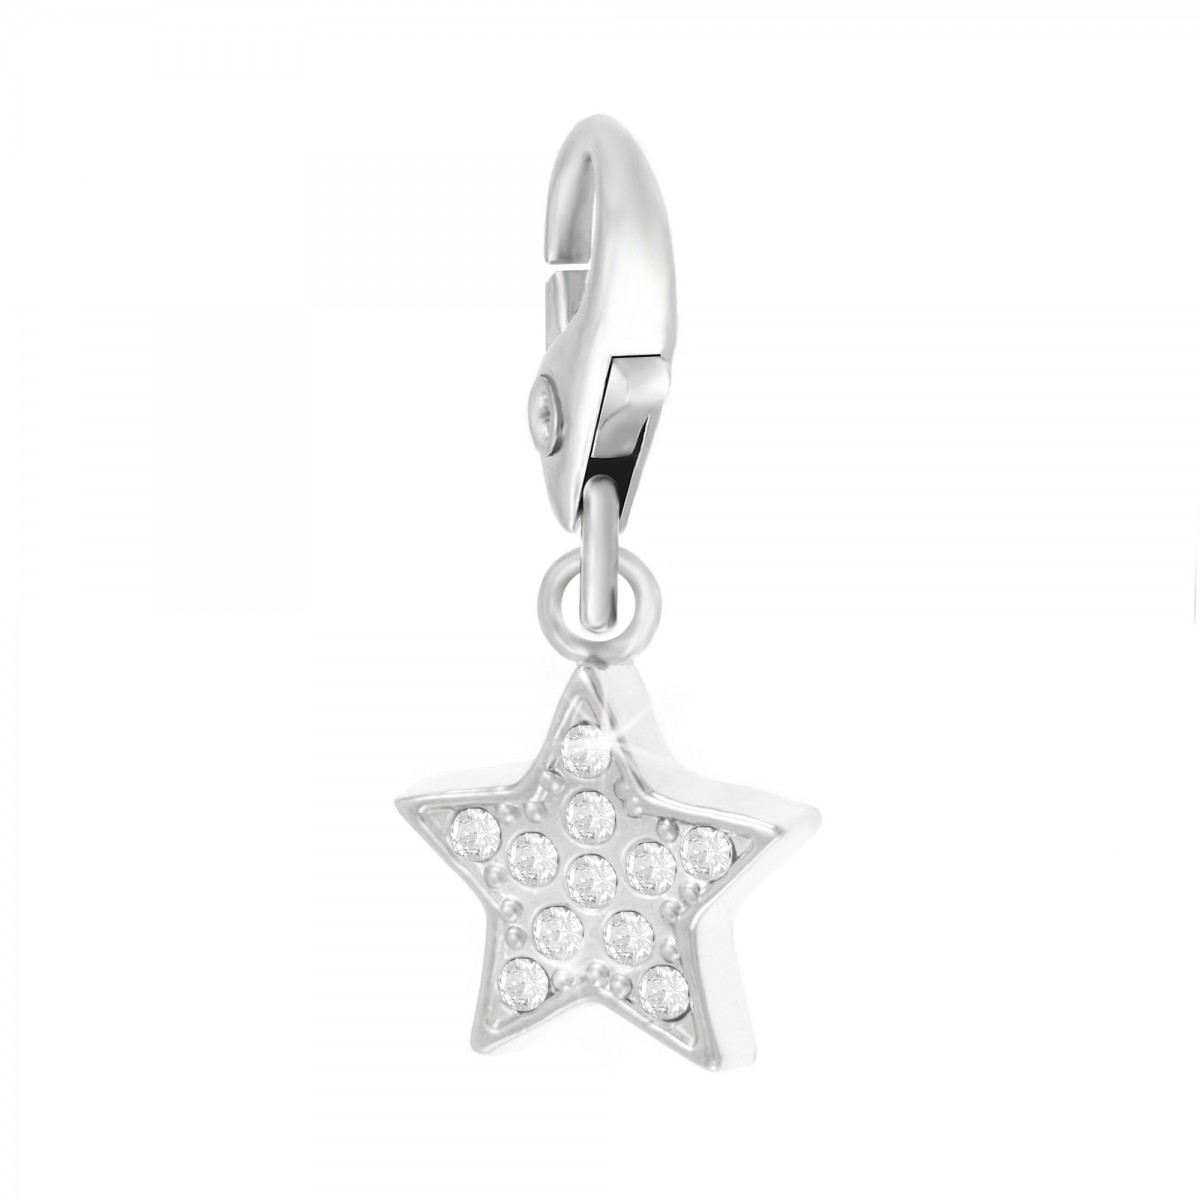 Charm étoile So Charm made with Crystal from Swarovski